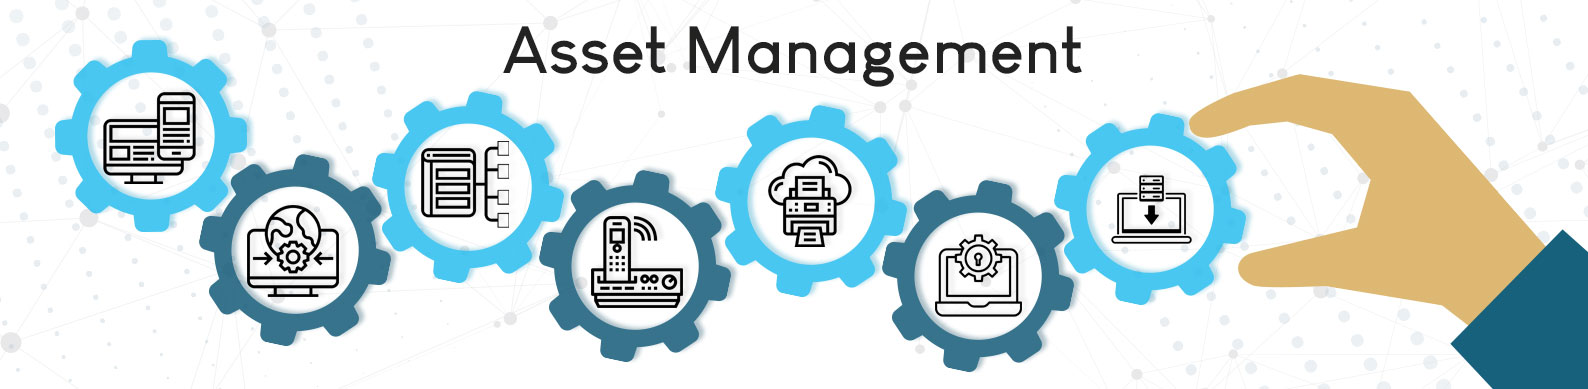 asset-management